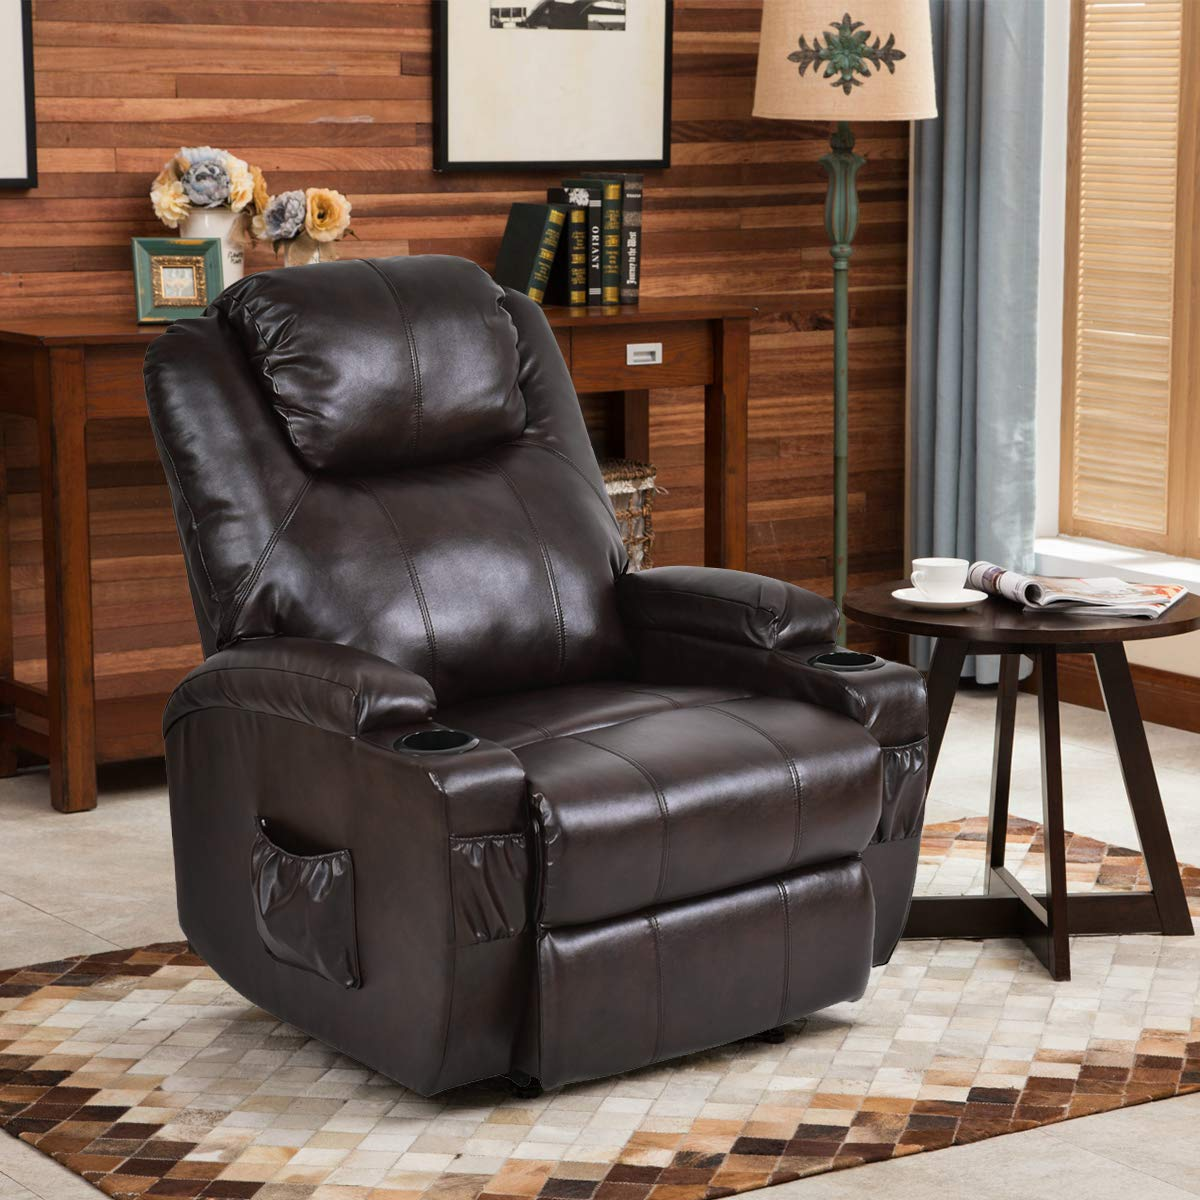 Giantex Electric Power Lift Recliner Chair for Elderly, Padded Seat with Remote Control for Gentle Motor Cup Holder Living Room Chair,Brown